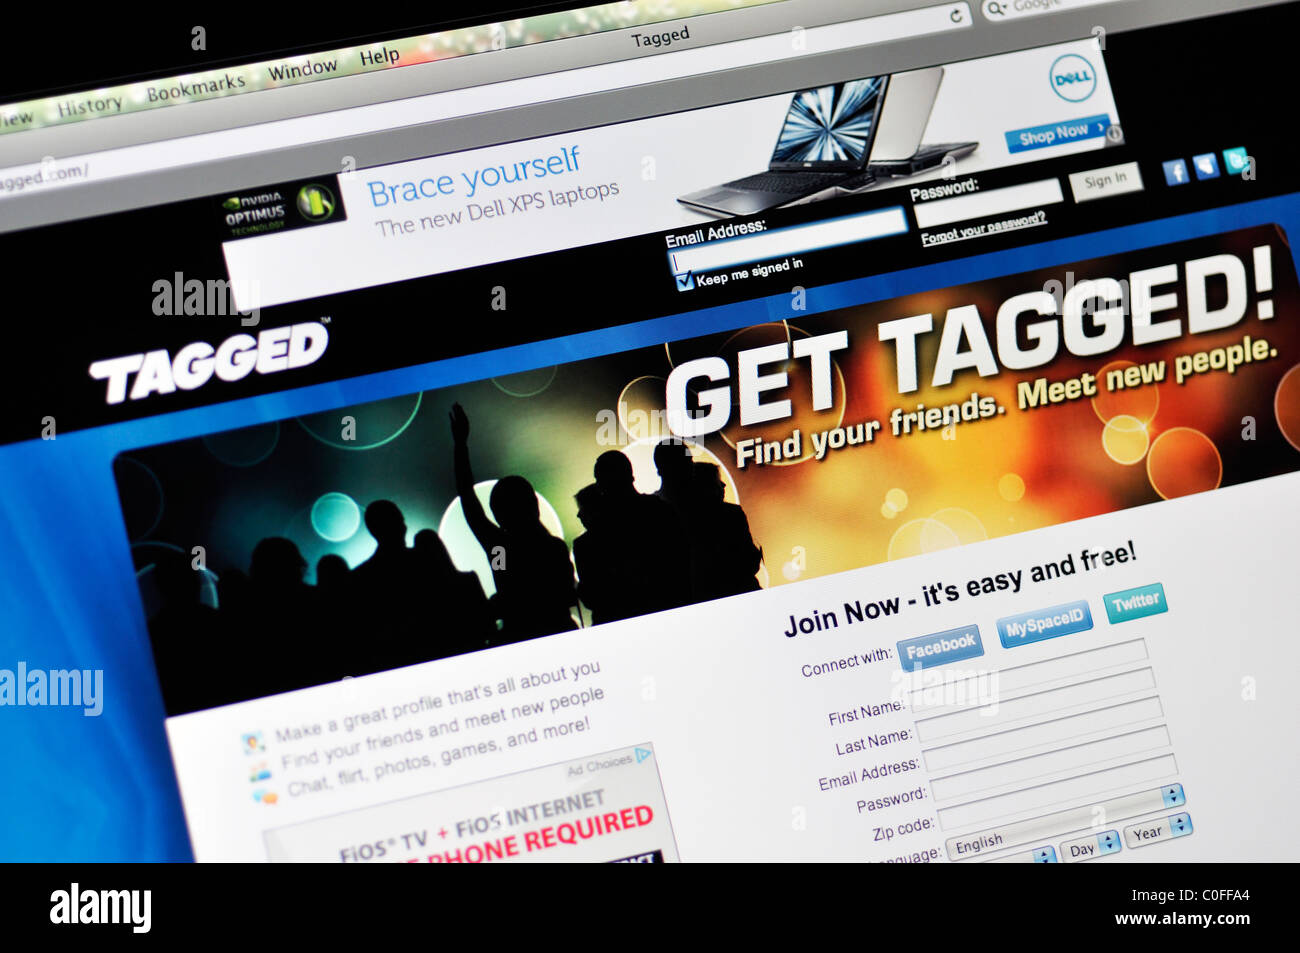 Tagged social networking website Stock Photo